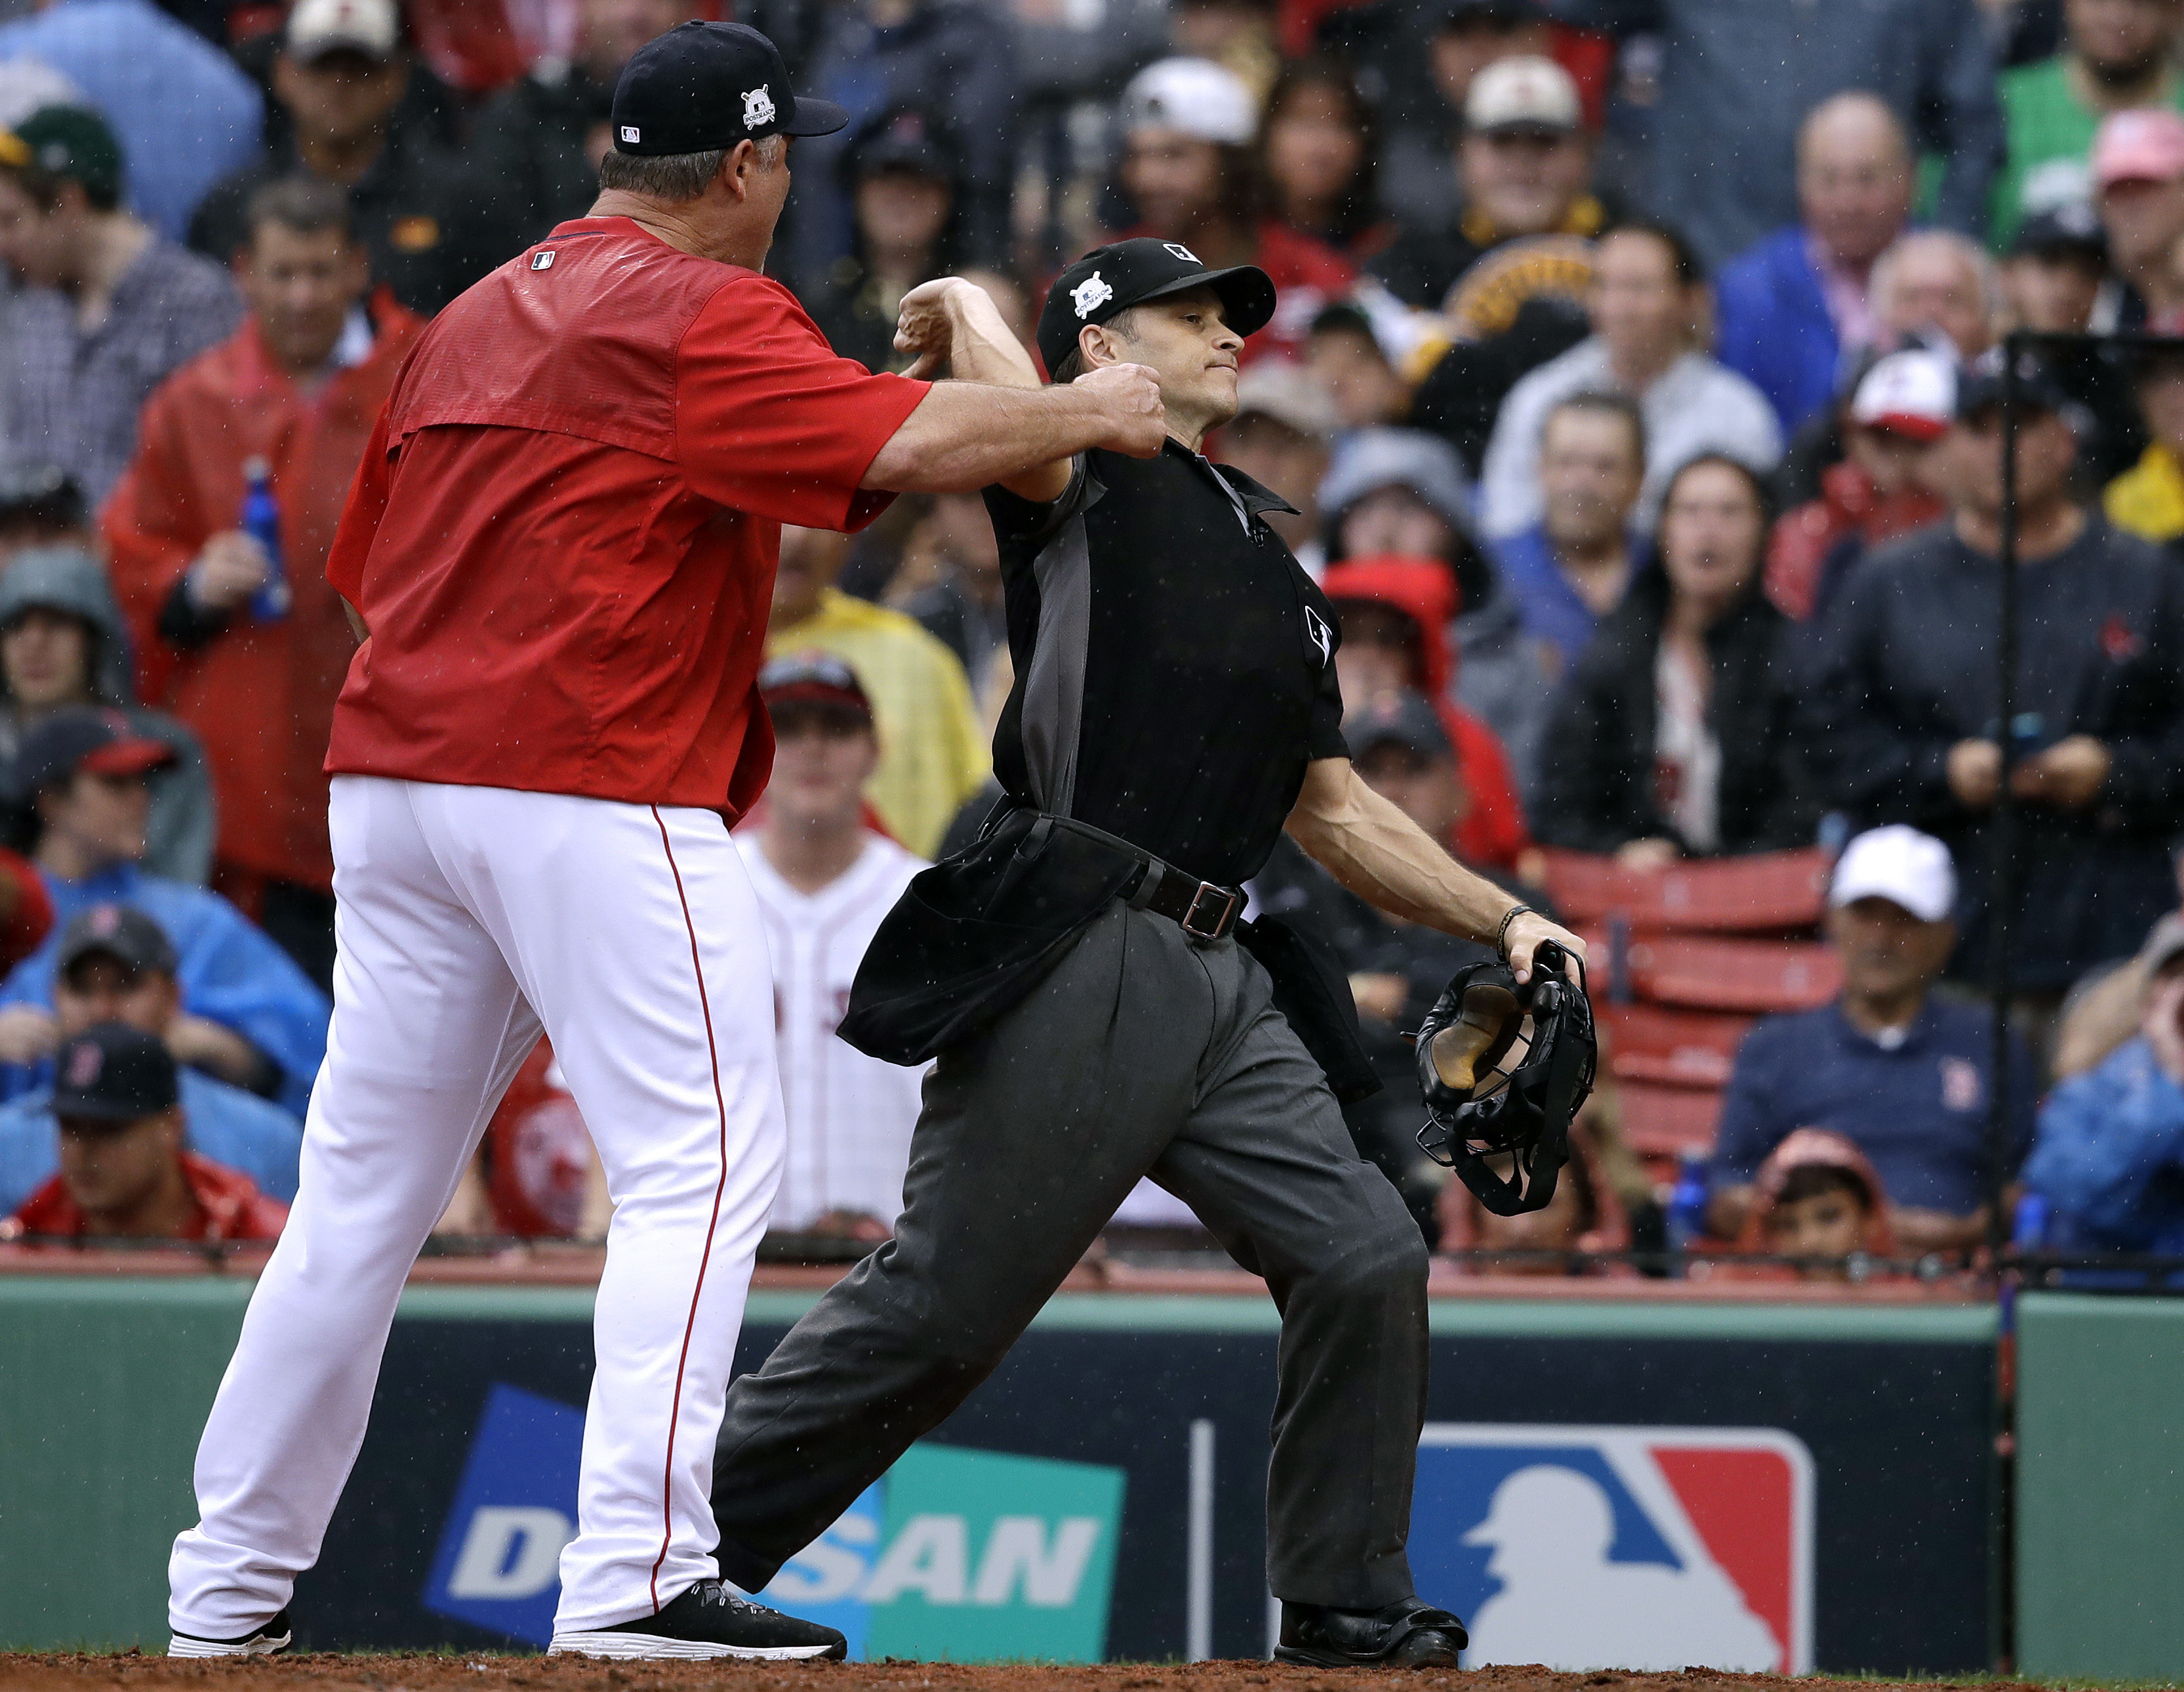 Red Sox manager John Farrell gets ejected in Game 4, then goes off on umpire